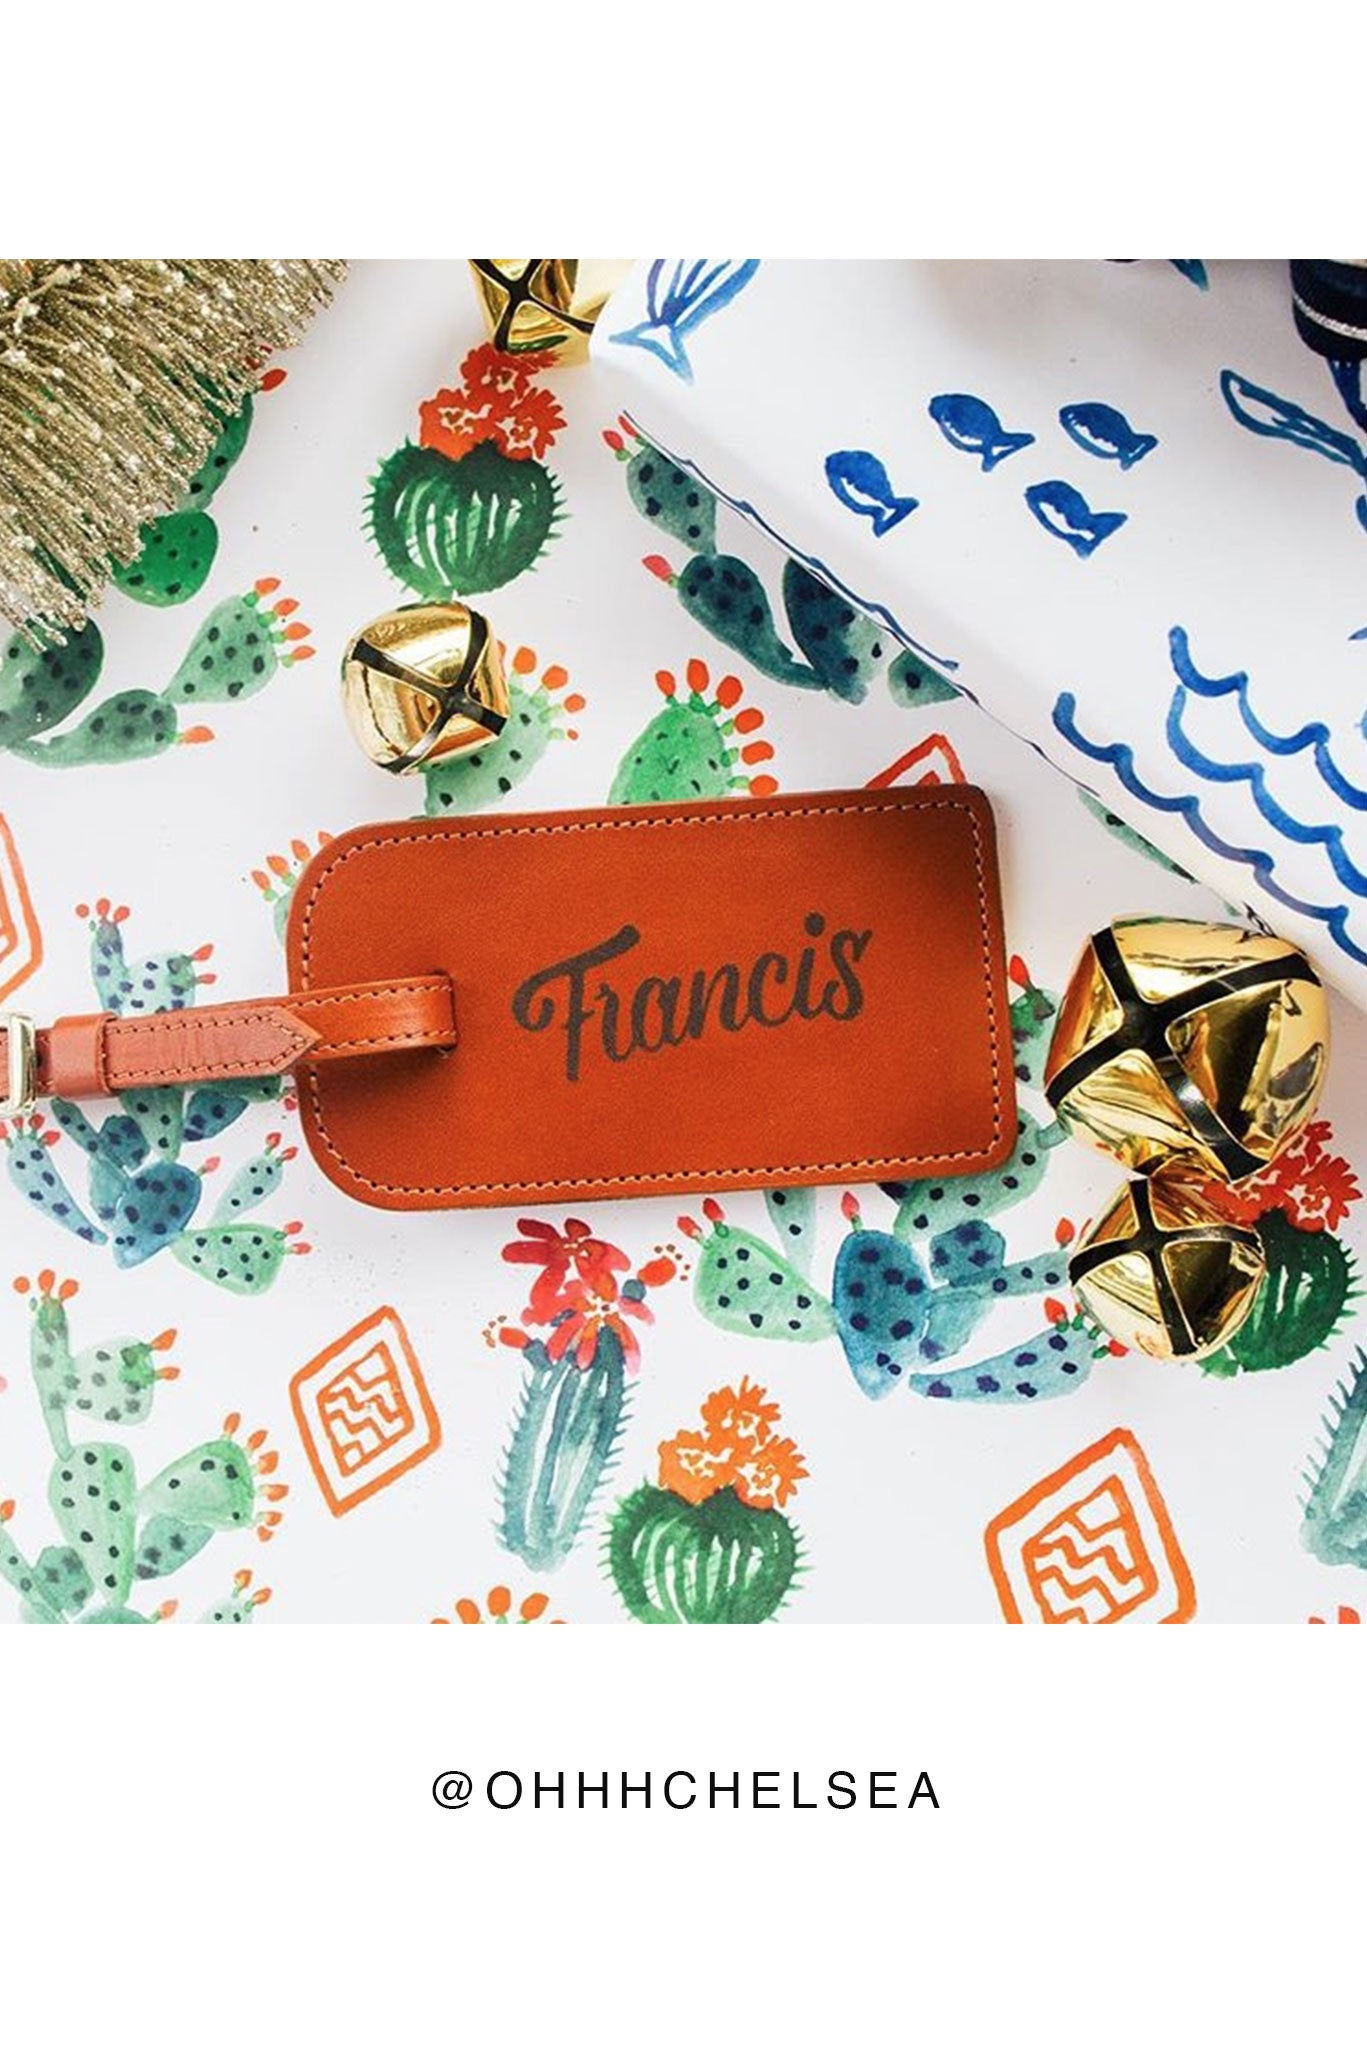 FOTO | Cognac Leather Luggage Tag - genuine leather luggage tag that can be personalized with gold foil initials, a monogram or business logo making it the perfect personalized travel gift.